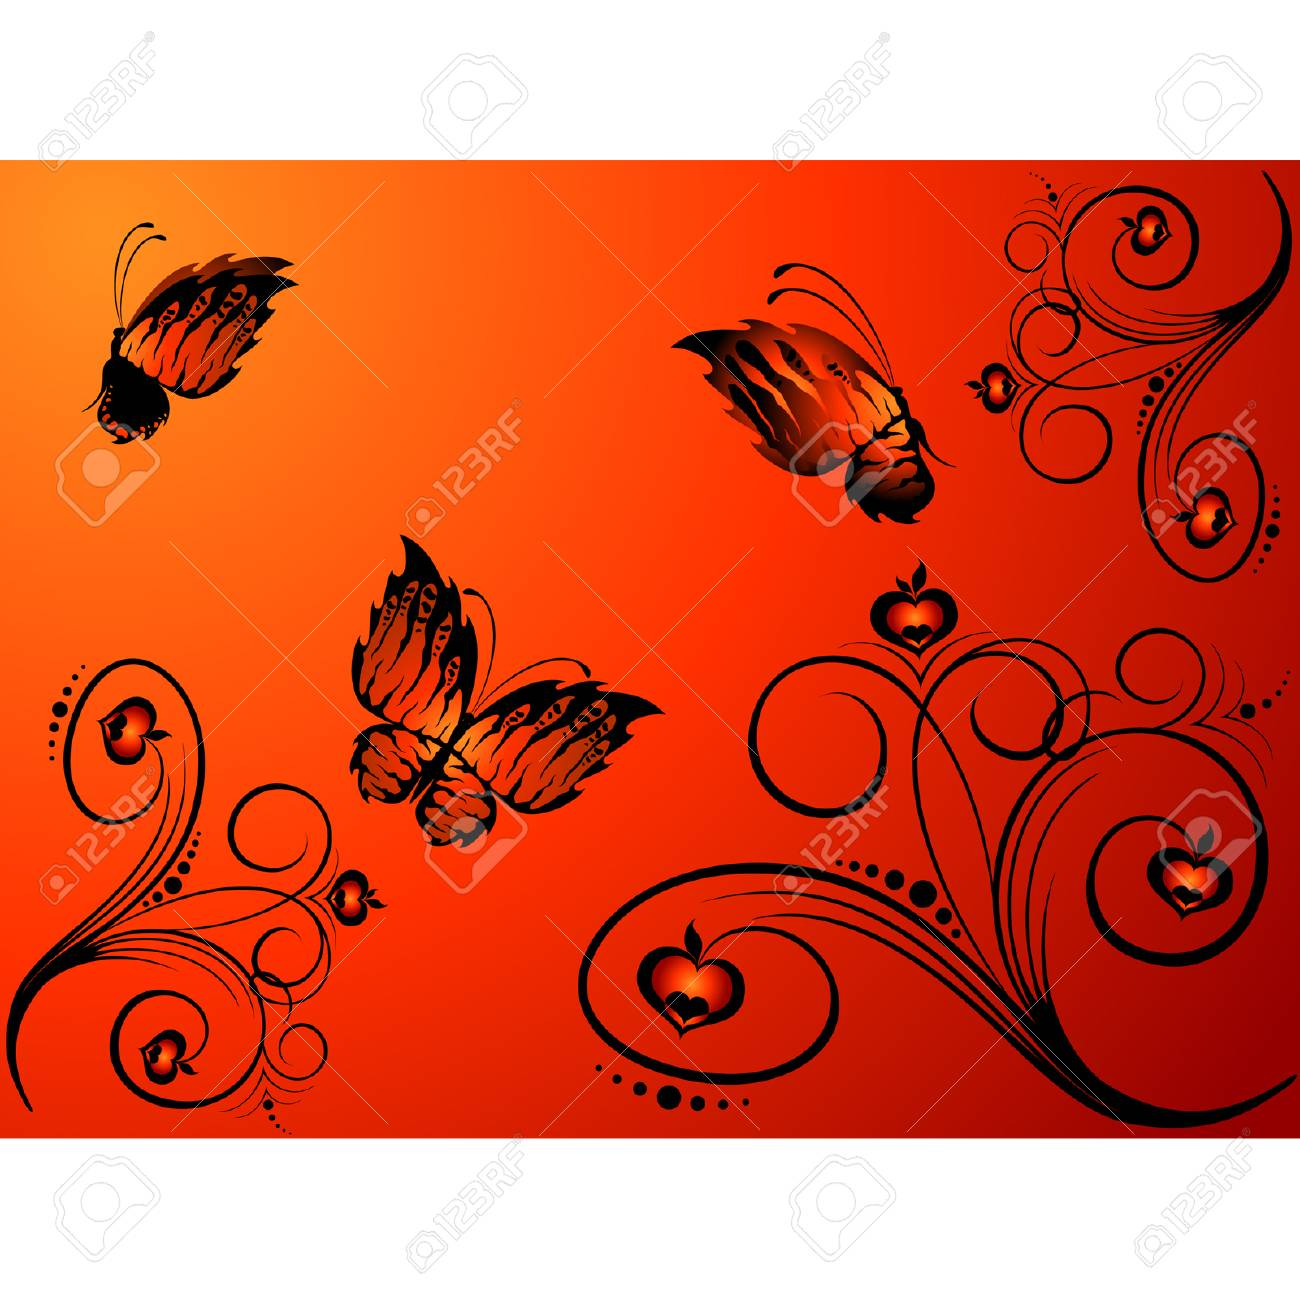 Abstract floral background with butterflies for design Stock Vector - 5578030